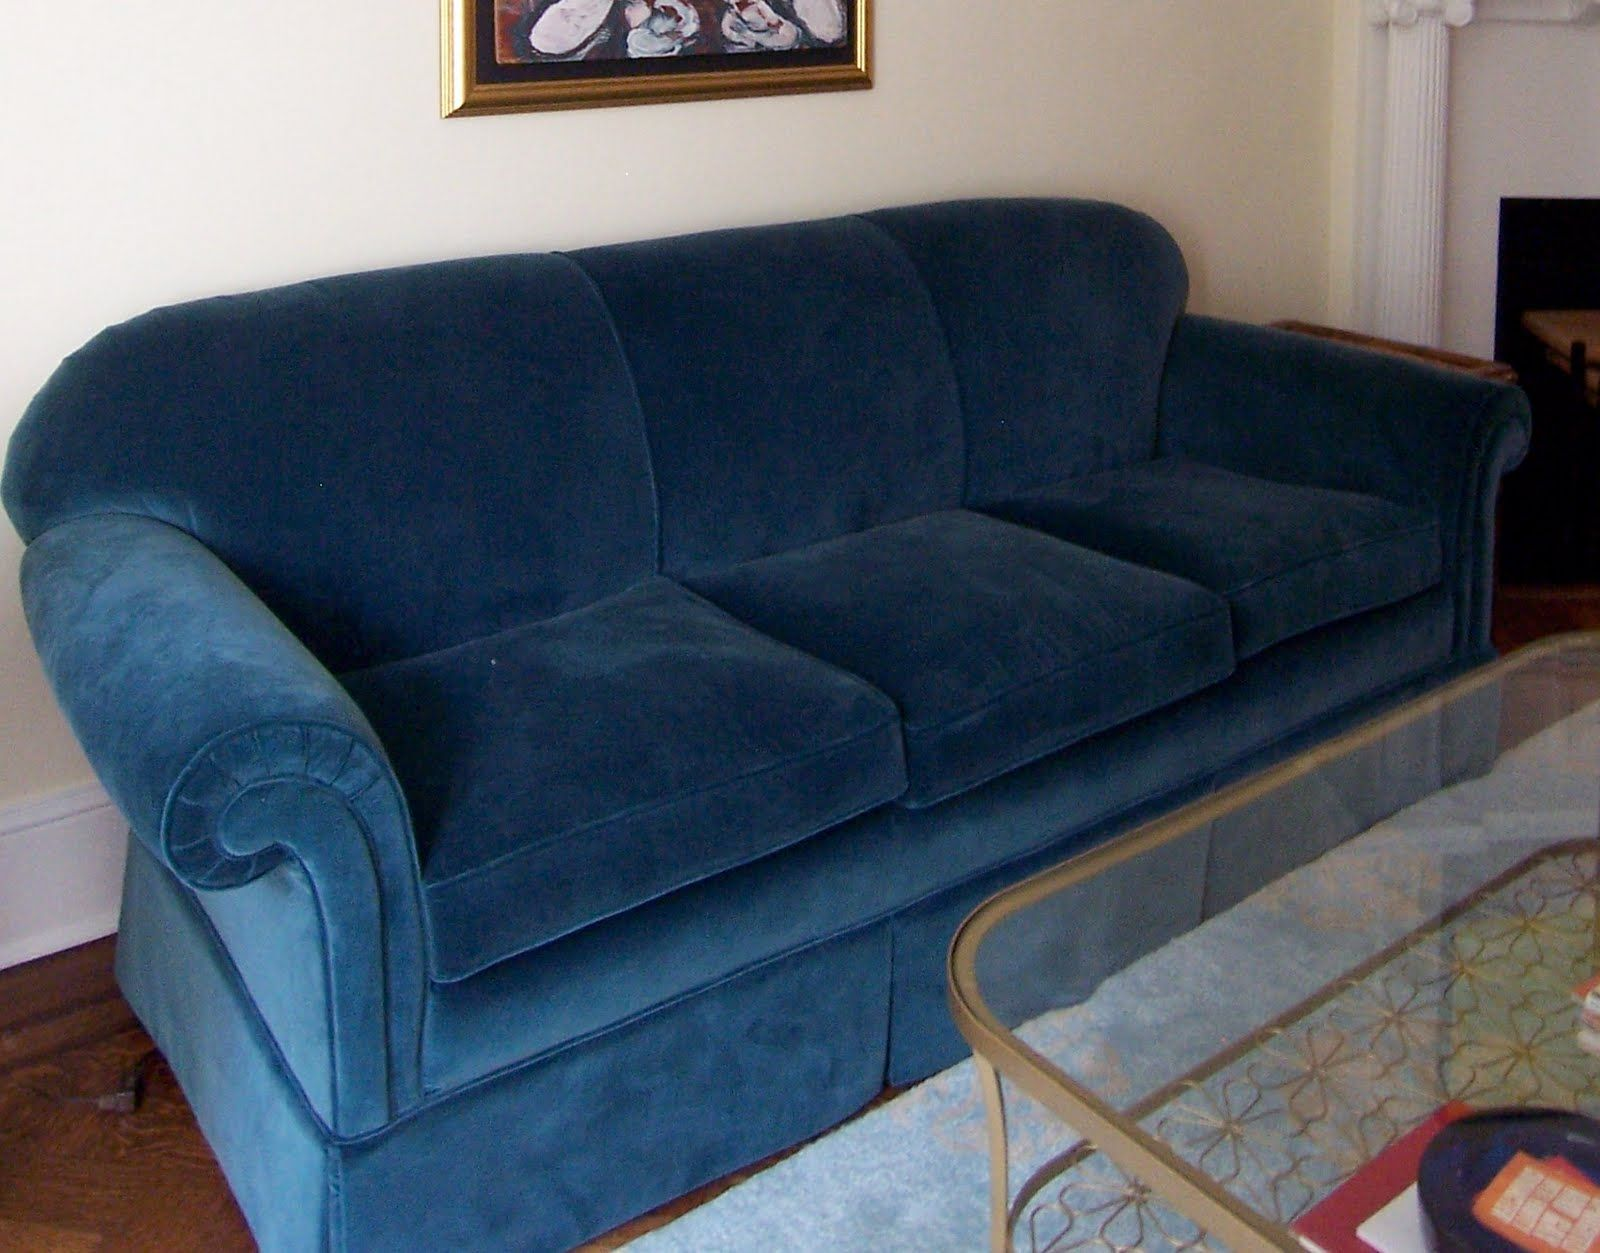 Reupholster Your Old Sofa With Such